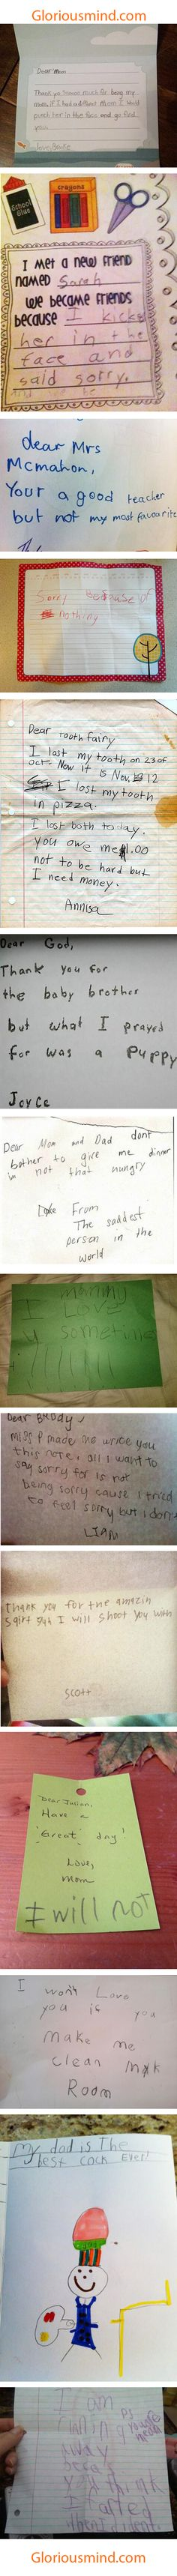 @Isabel Wright, are these the kinds of notes you imagine my and Dustin's kid writing??? Hahahaha!